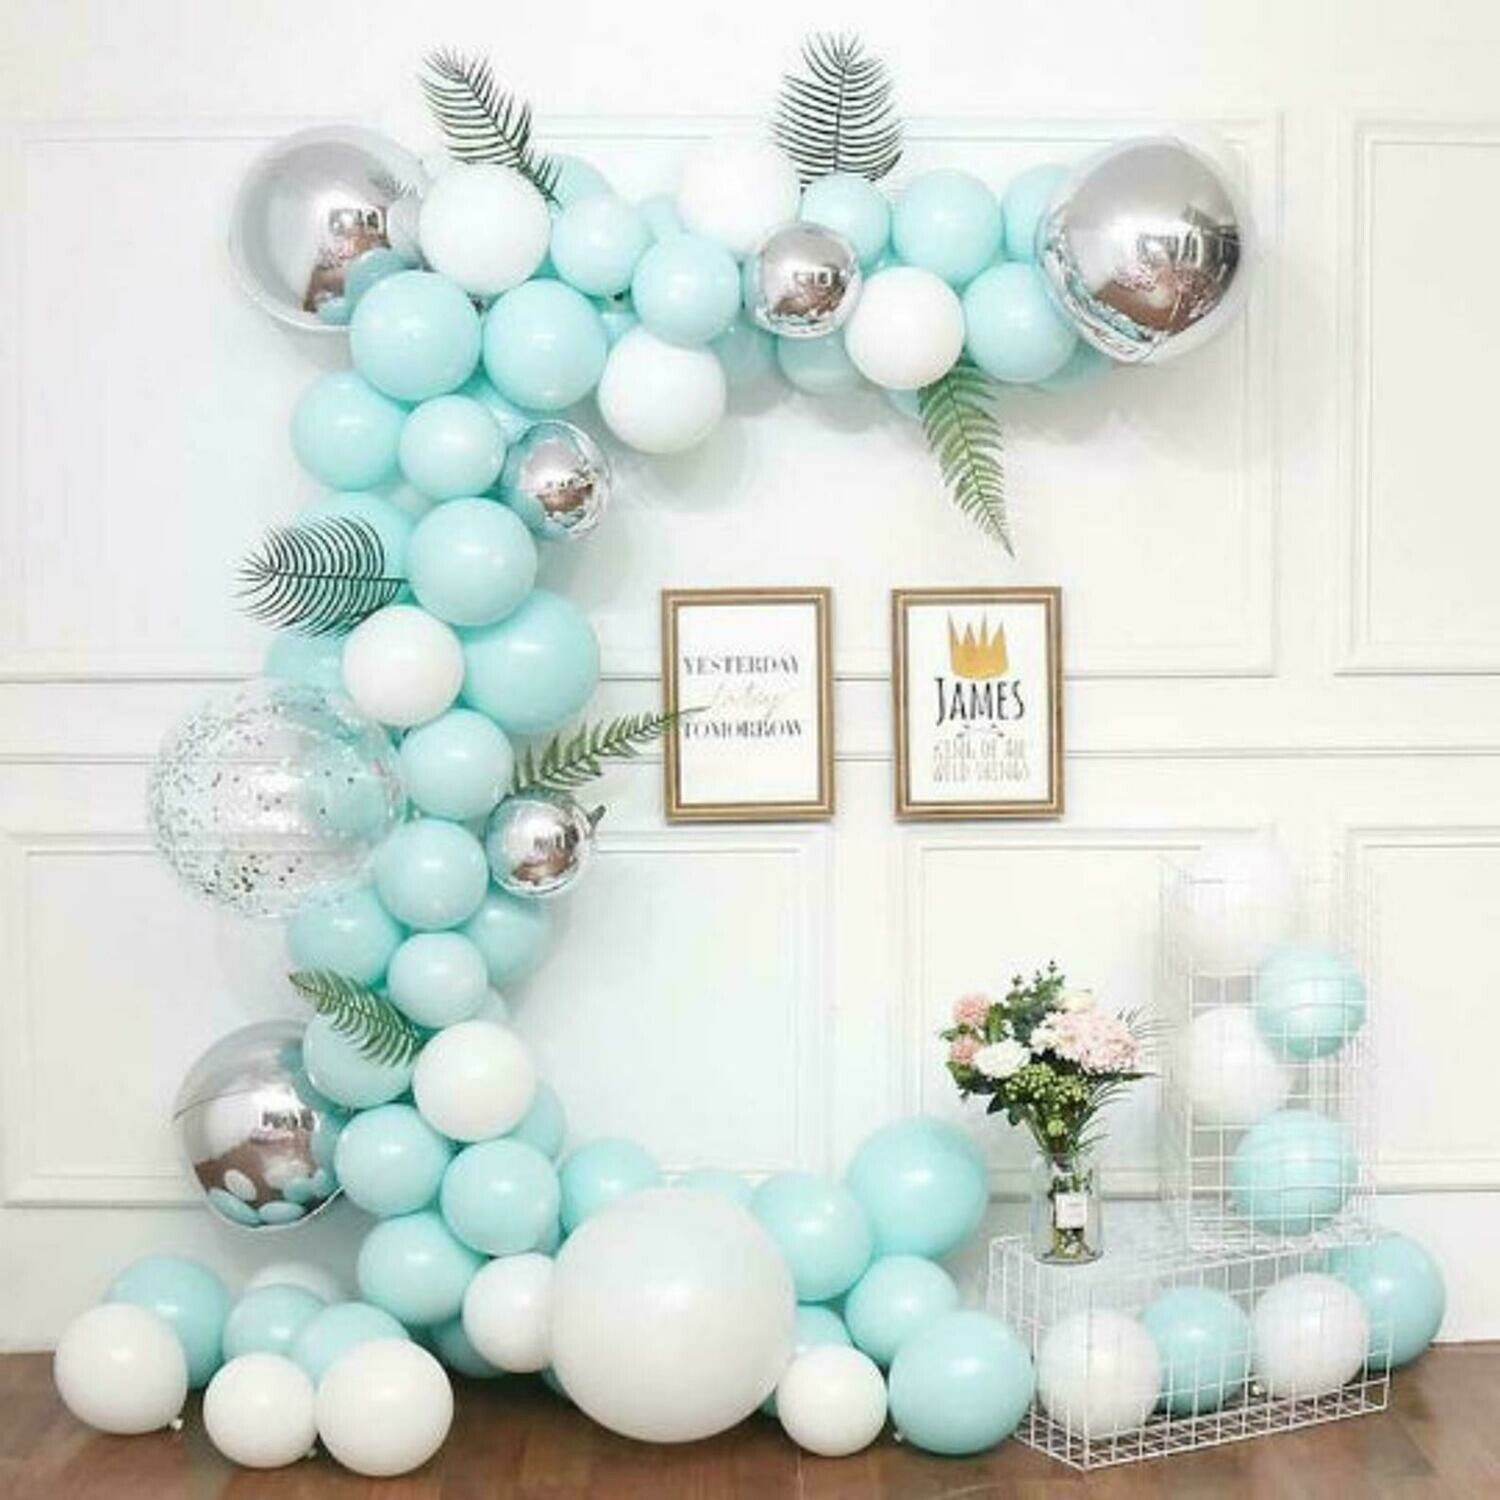 116pcs Macaron Garland Kit Balloon Chain Leaf White & Blue Latex Balloons for Wedding Birthday Anniversary Party Decorations